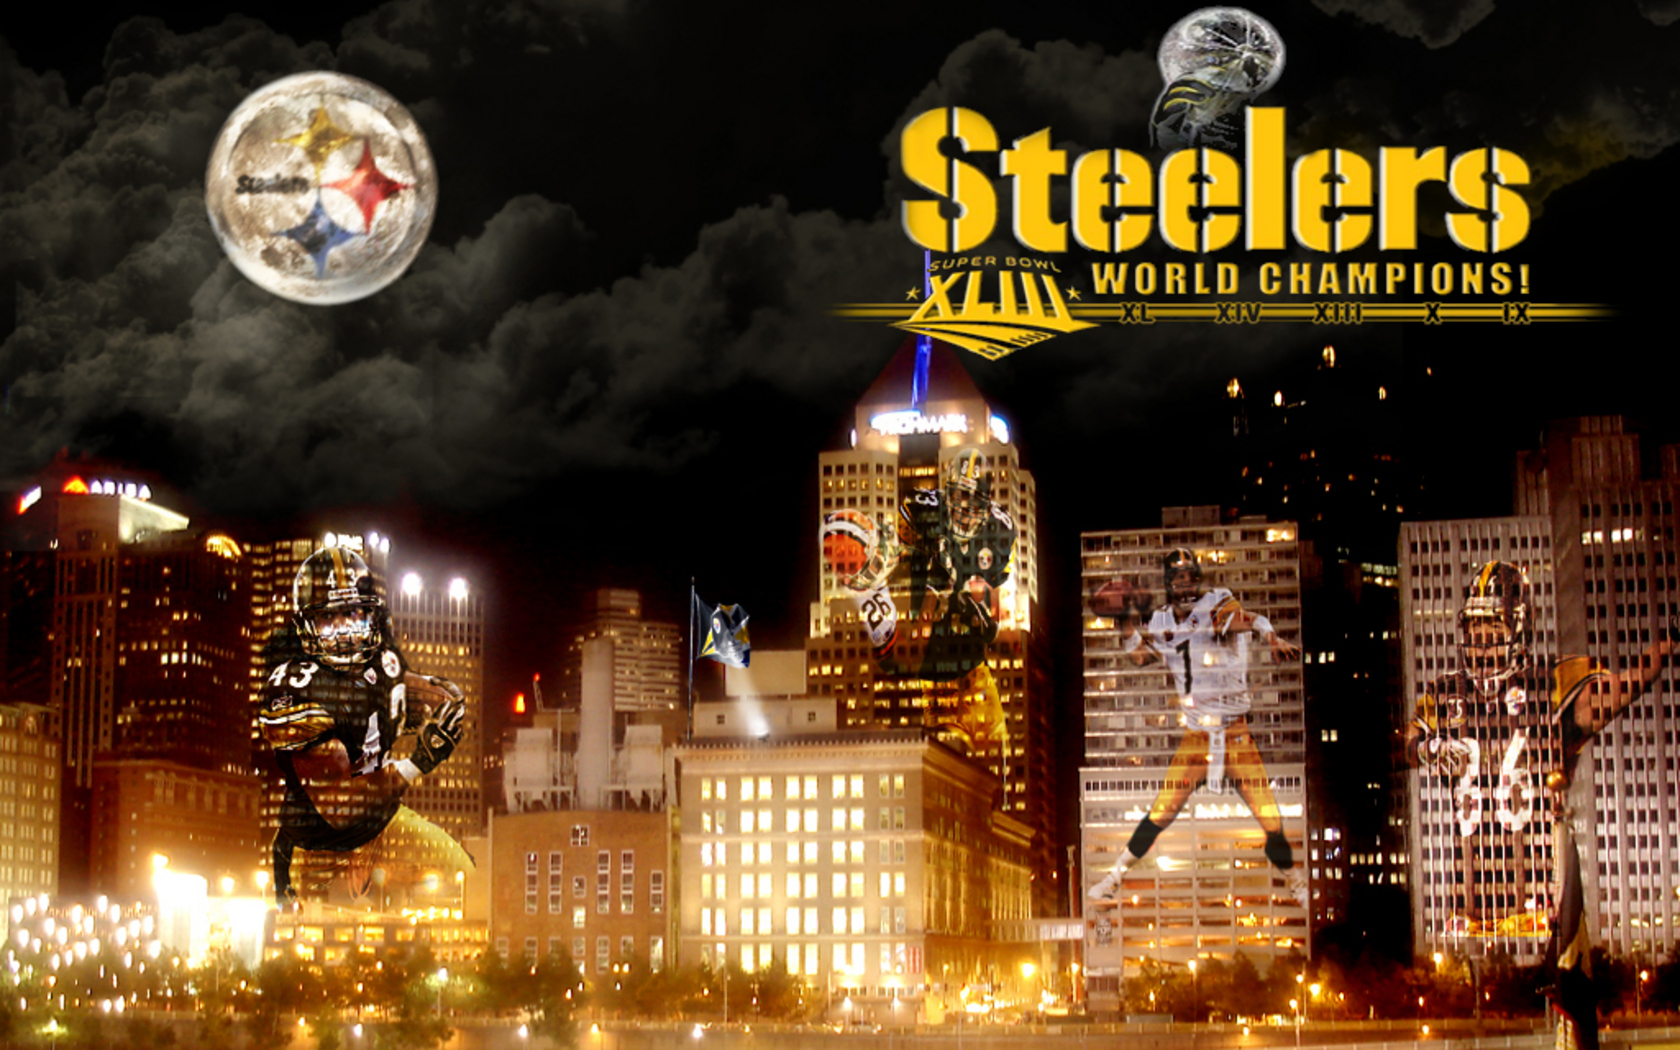 Enjoy this new Pittsburgh Steelers desktop background 1680x1050